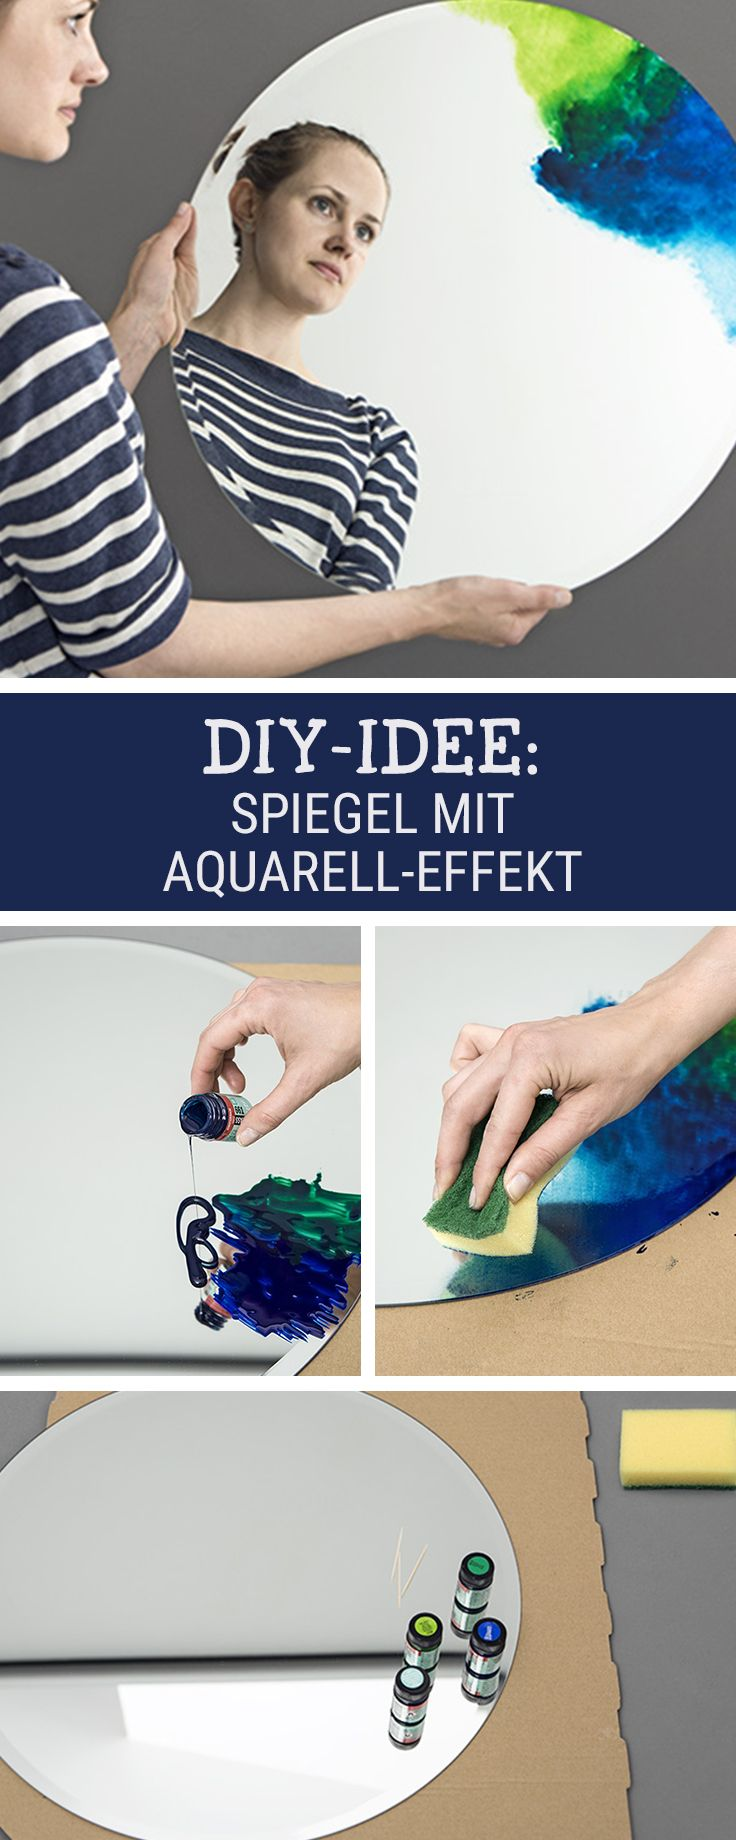 Wohn-DIY: So bastelst Du Dir einen Spiegel mit Aquarelleffekt / learn how to craft a mirror with a watercolor look via DaWanda.com